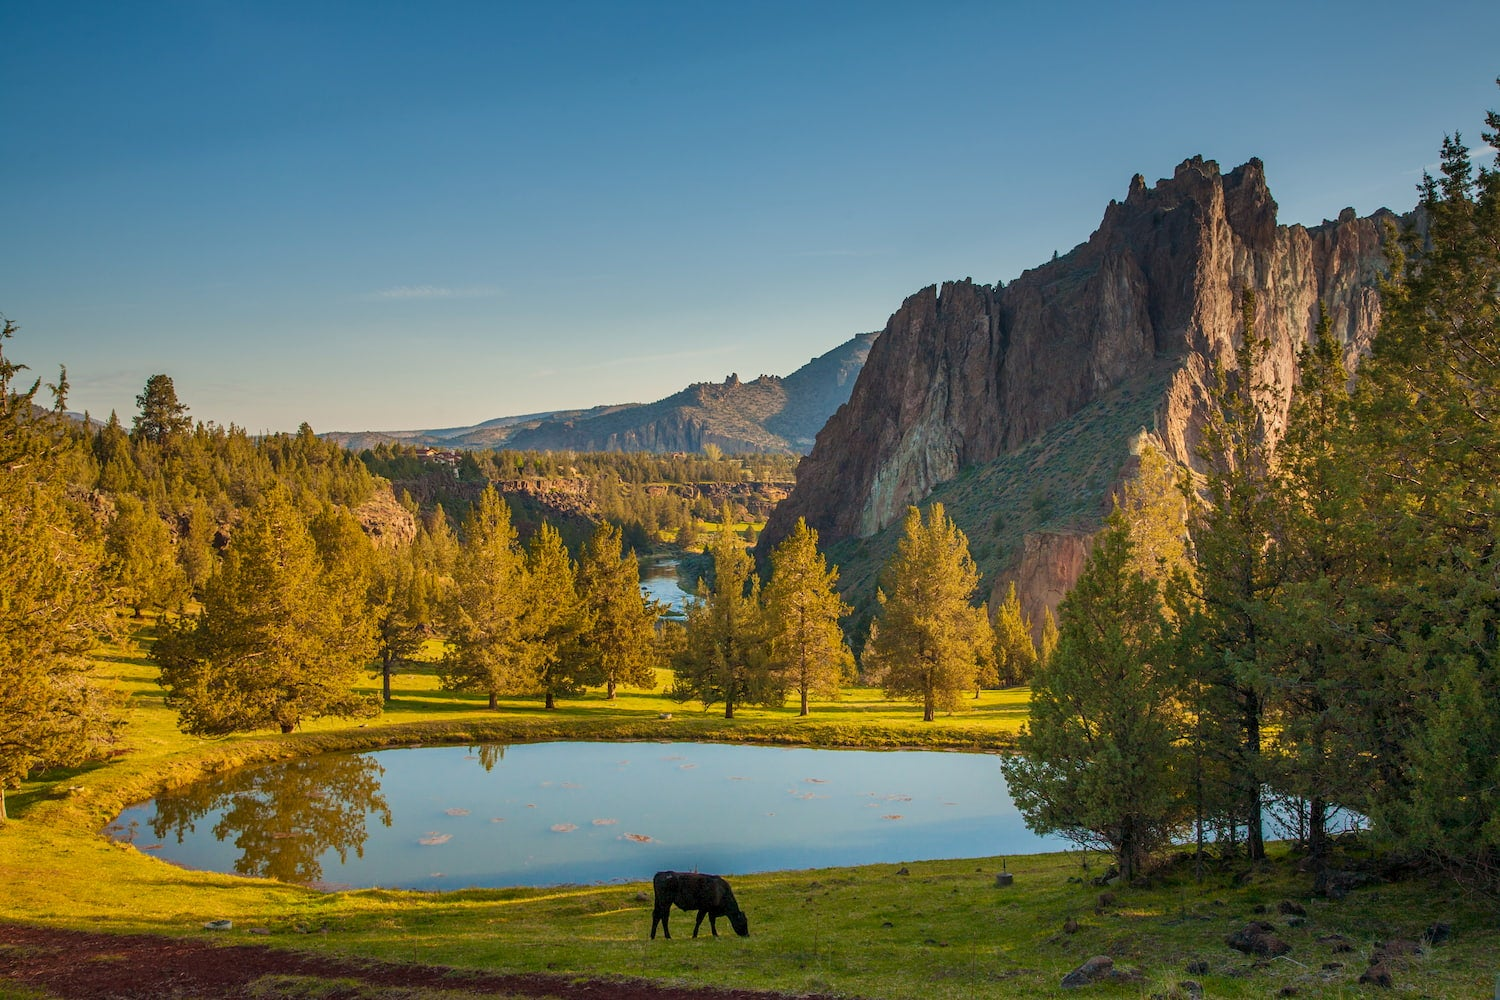 cow in front of lake at smith rock state park